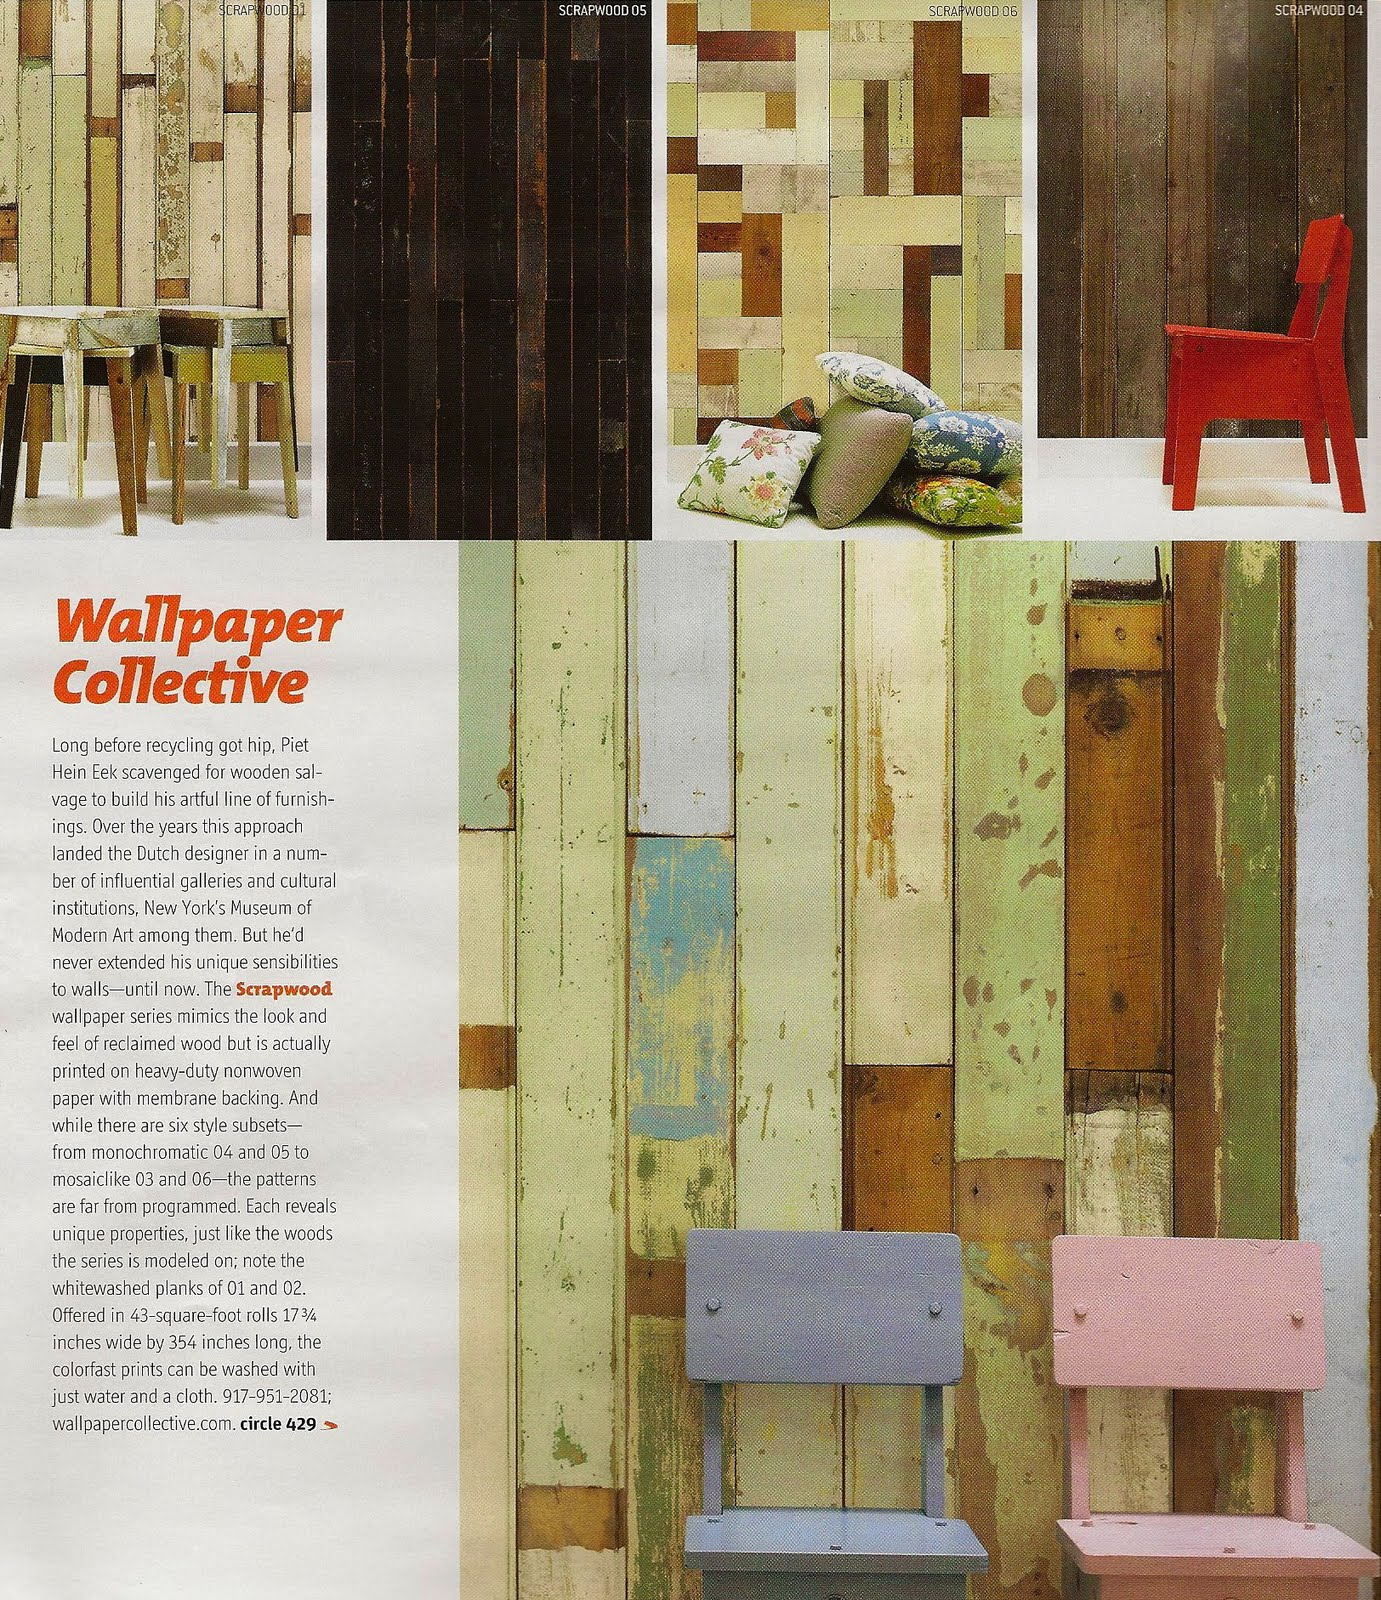 ... Has To Be You®: Scrapwood wallpaper by Dutch designer Piet Hein Eek